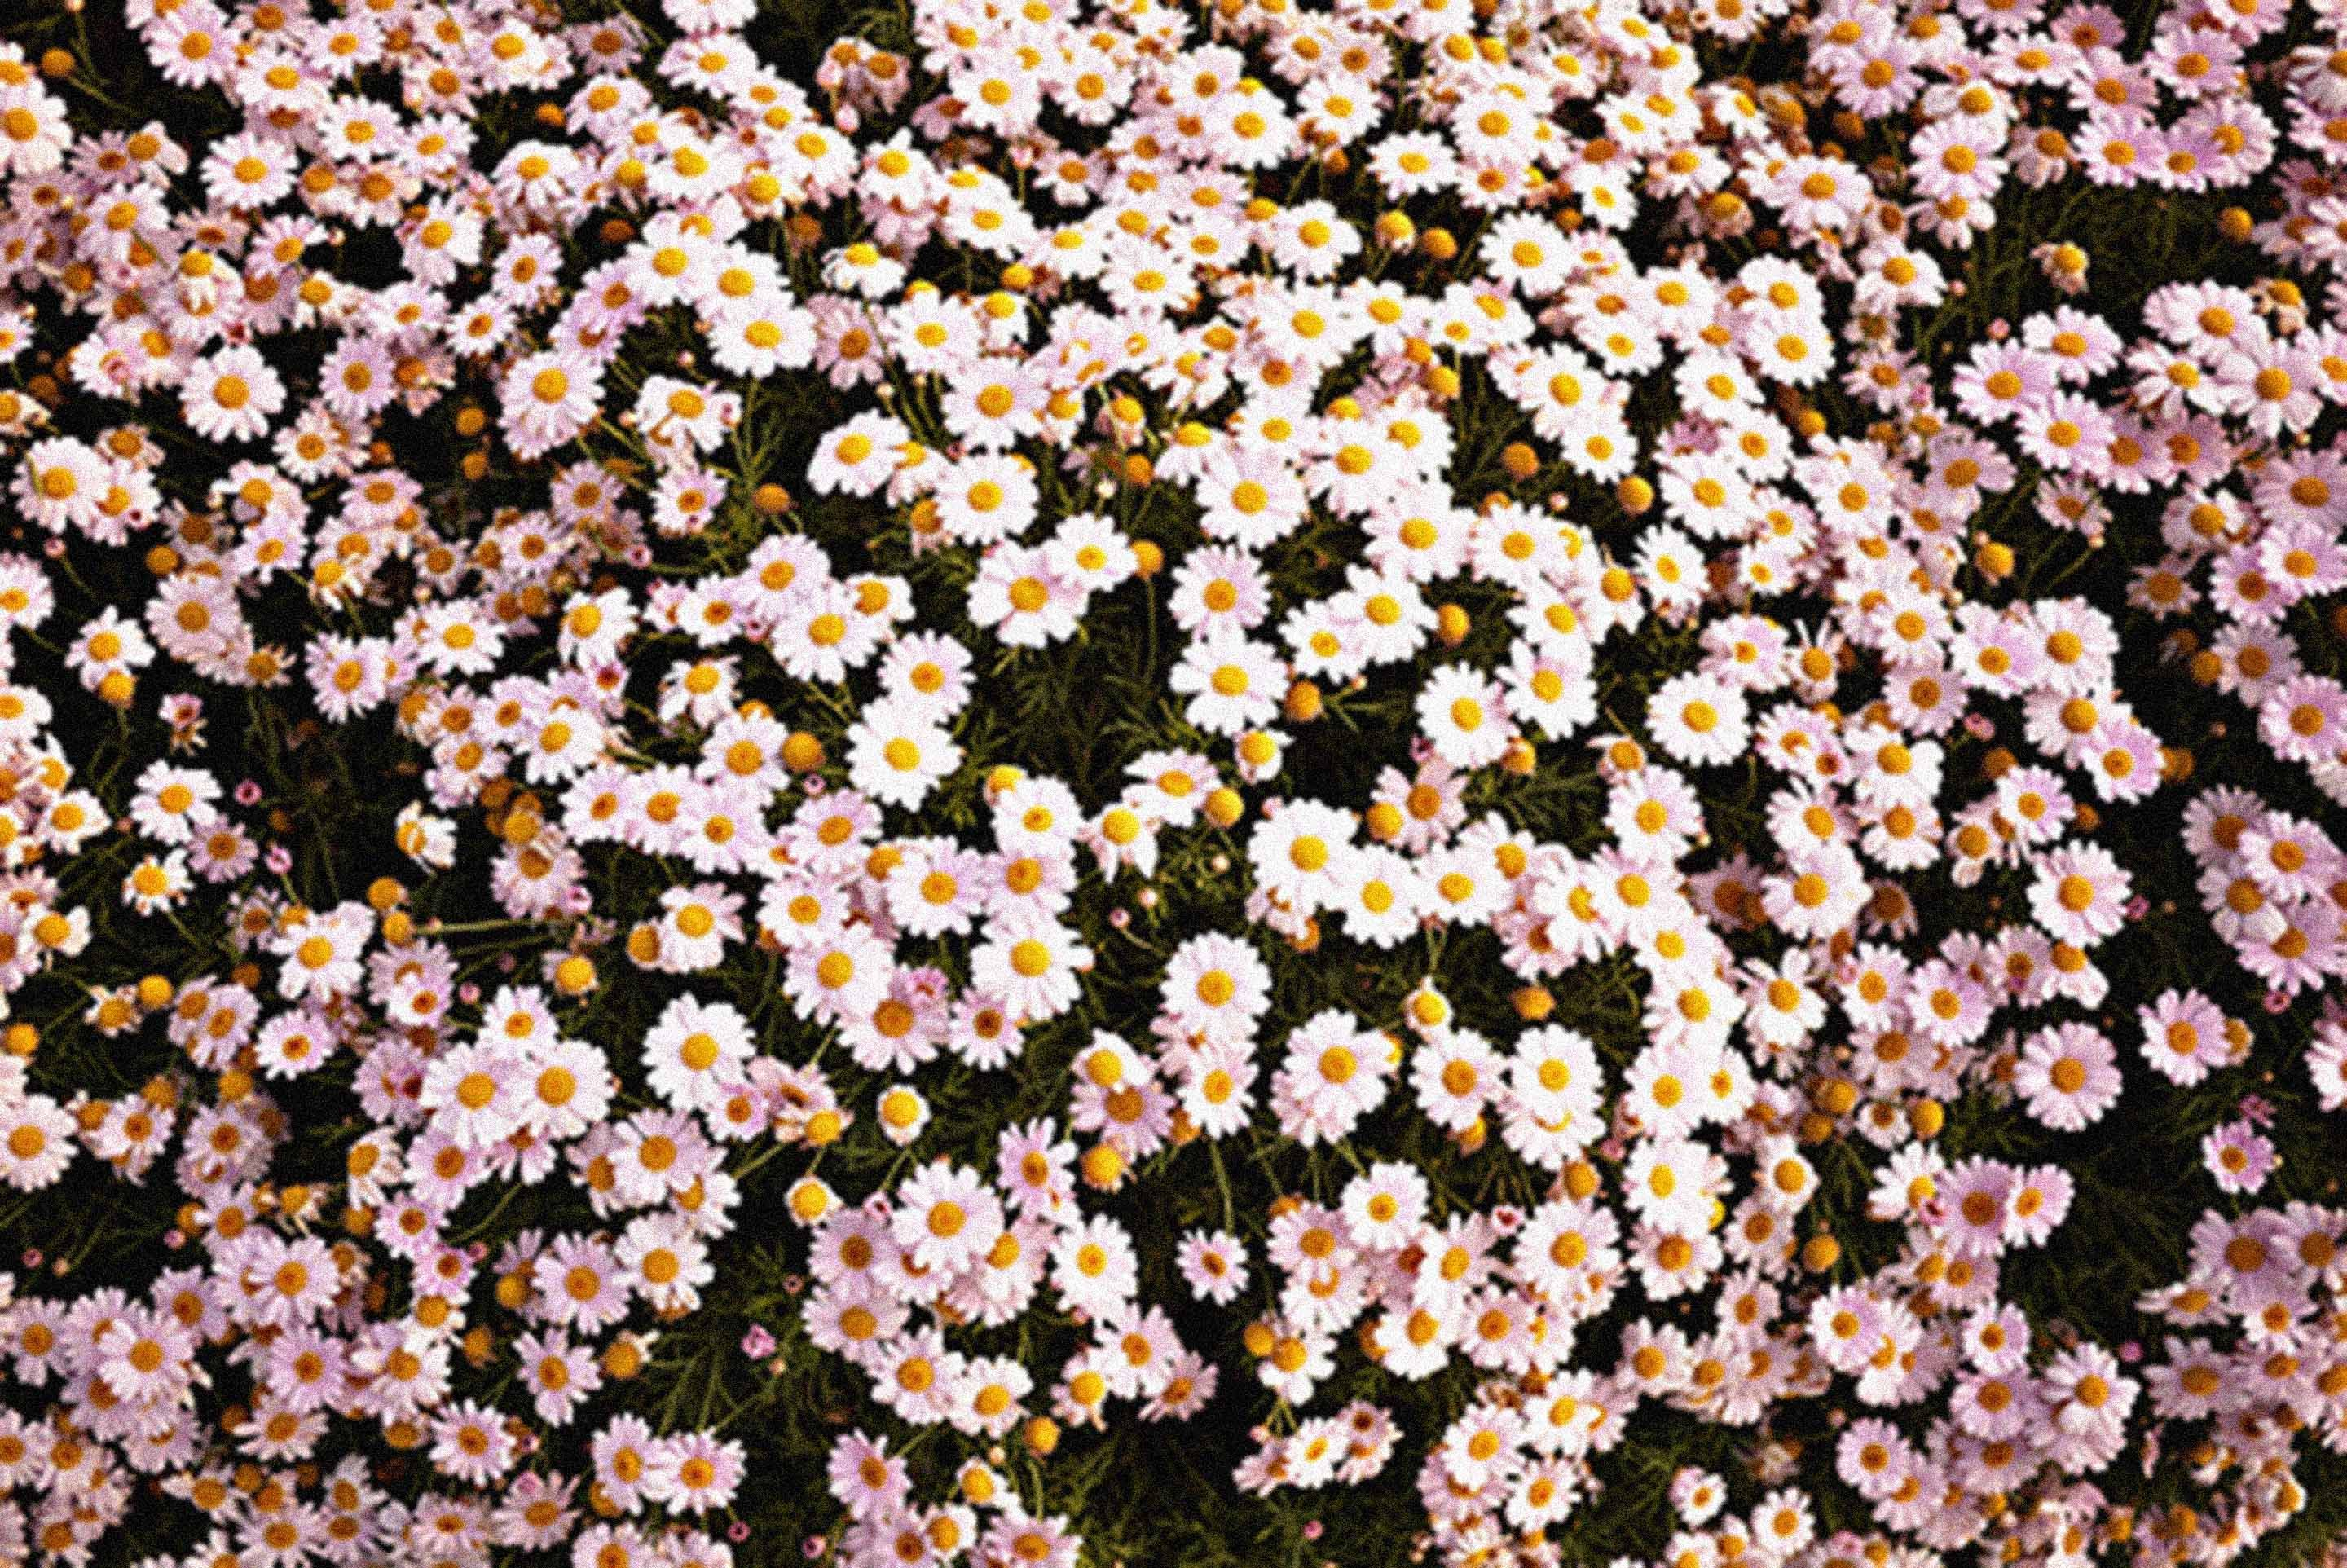 Daisies Background Floral Wallpaper Desktop Vintage Flowers Wallpaper Iphone Wallpaper Vintage